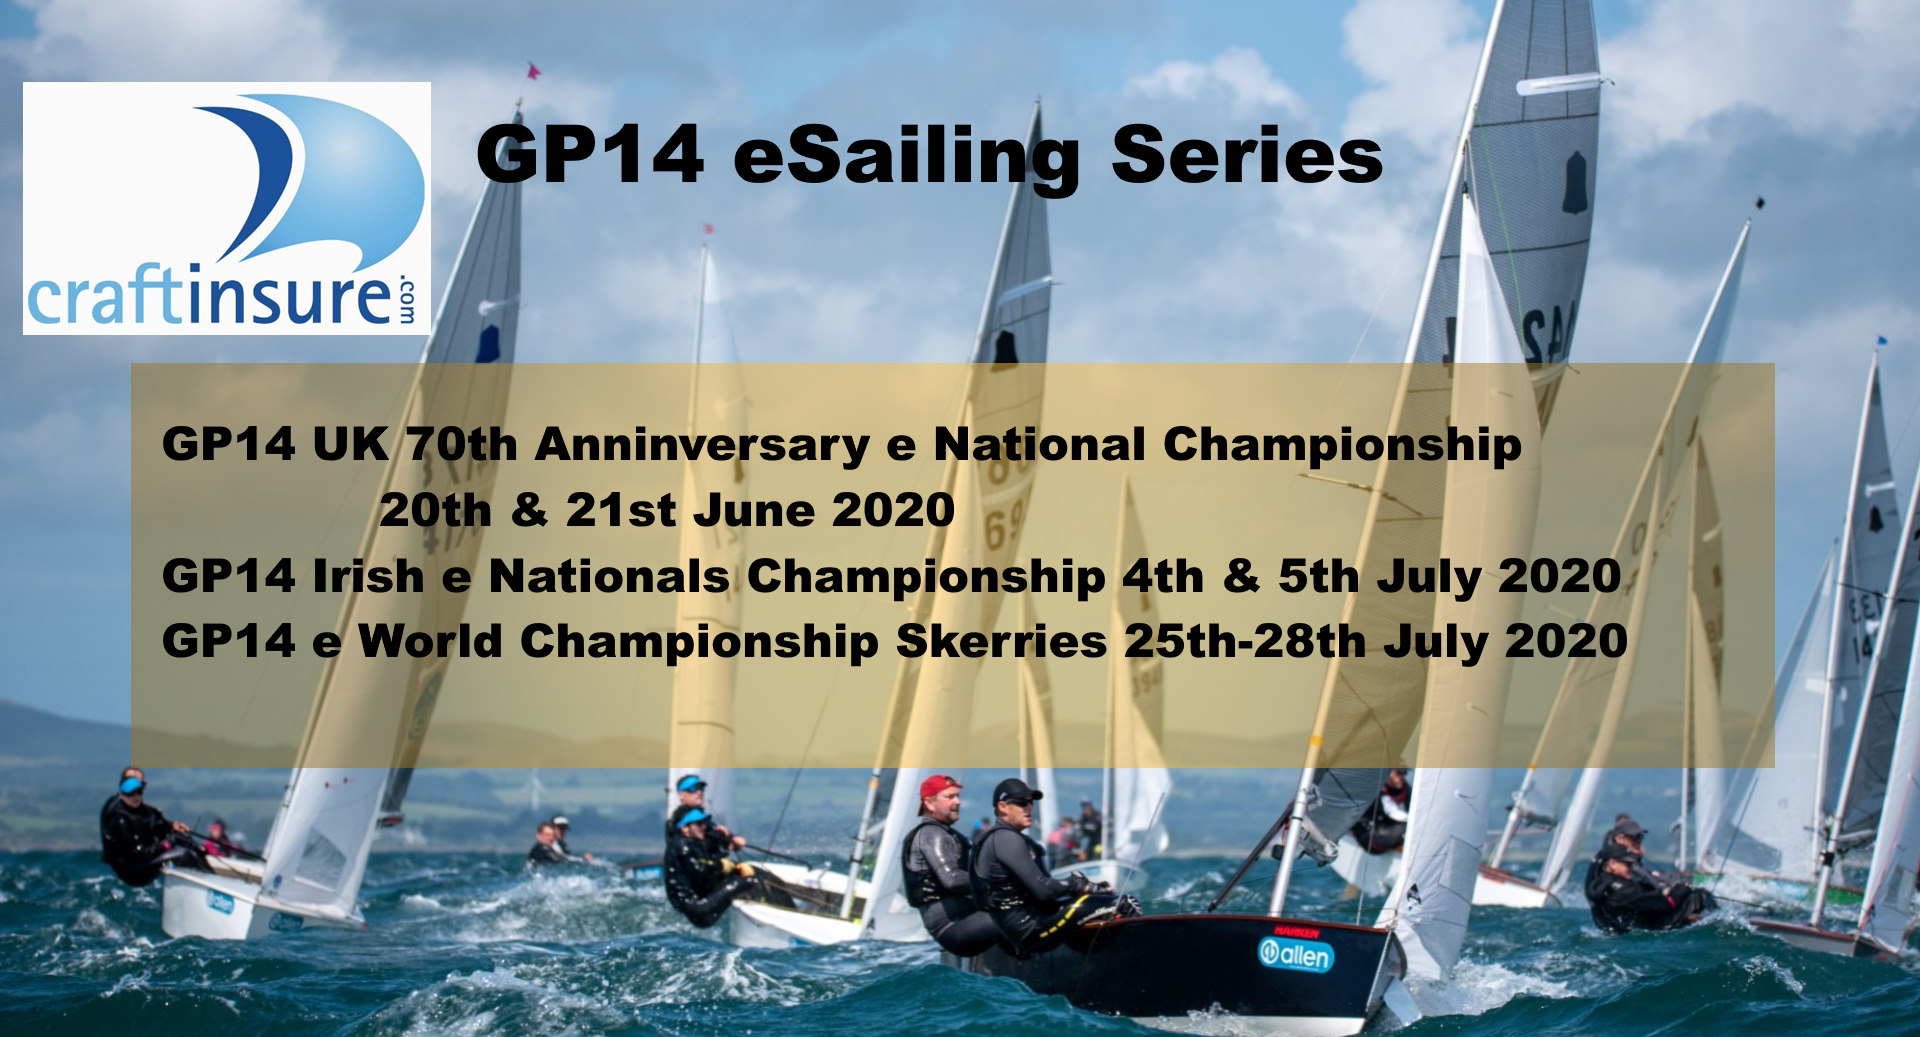 GP14 eSailing Series 2020